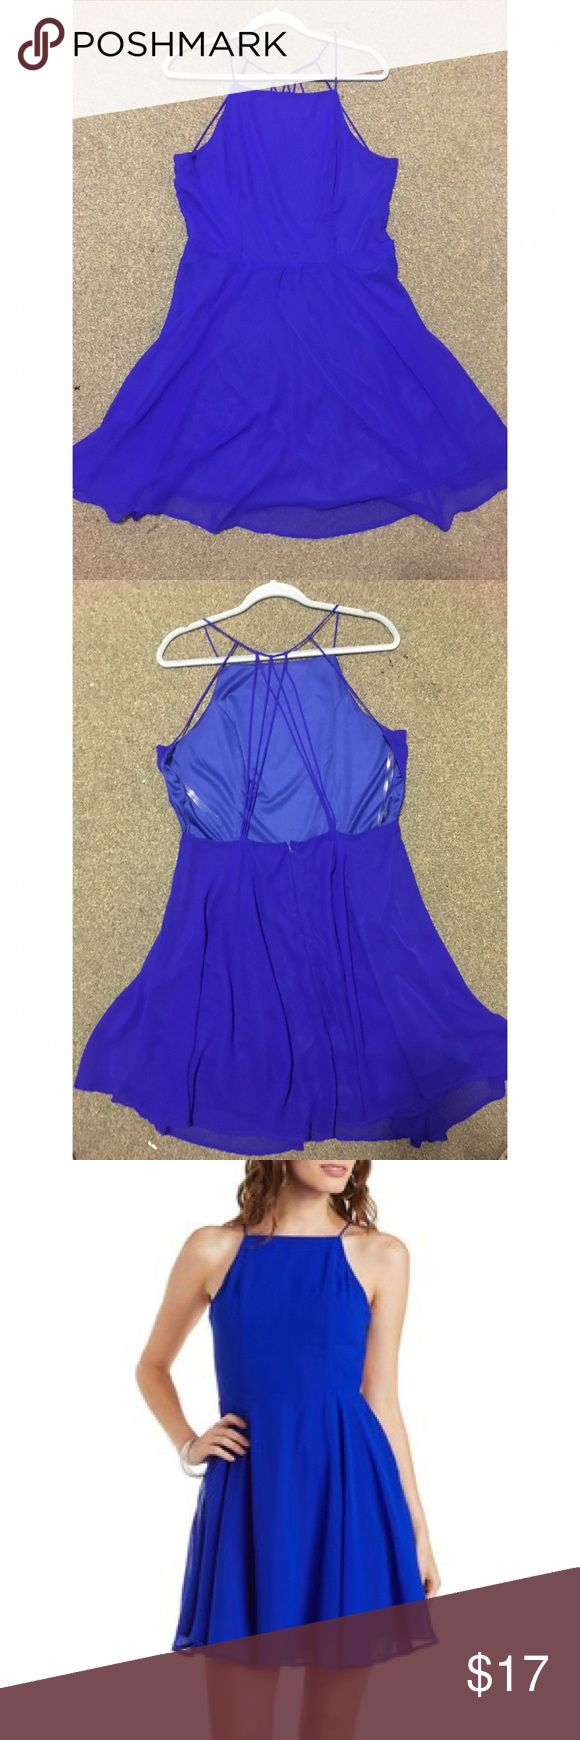 Charlotte Russe Electric Blue Dress Super cute electric blue open back dress, perfect for spring/summer! Charlotte Russe Dresses Mini